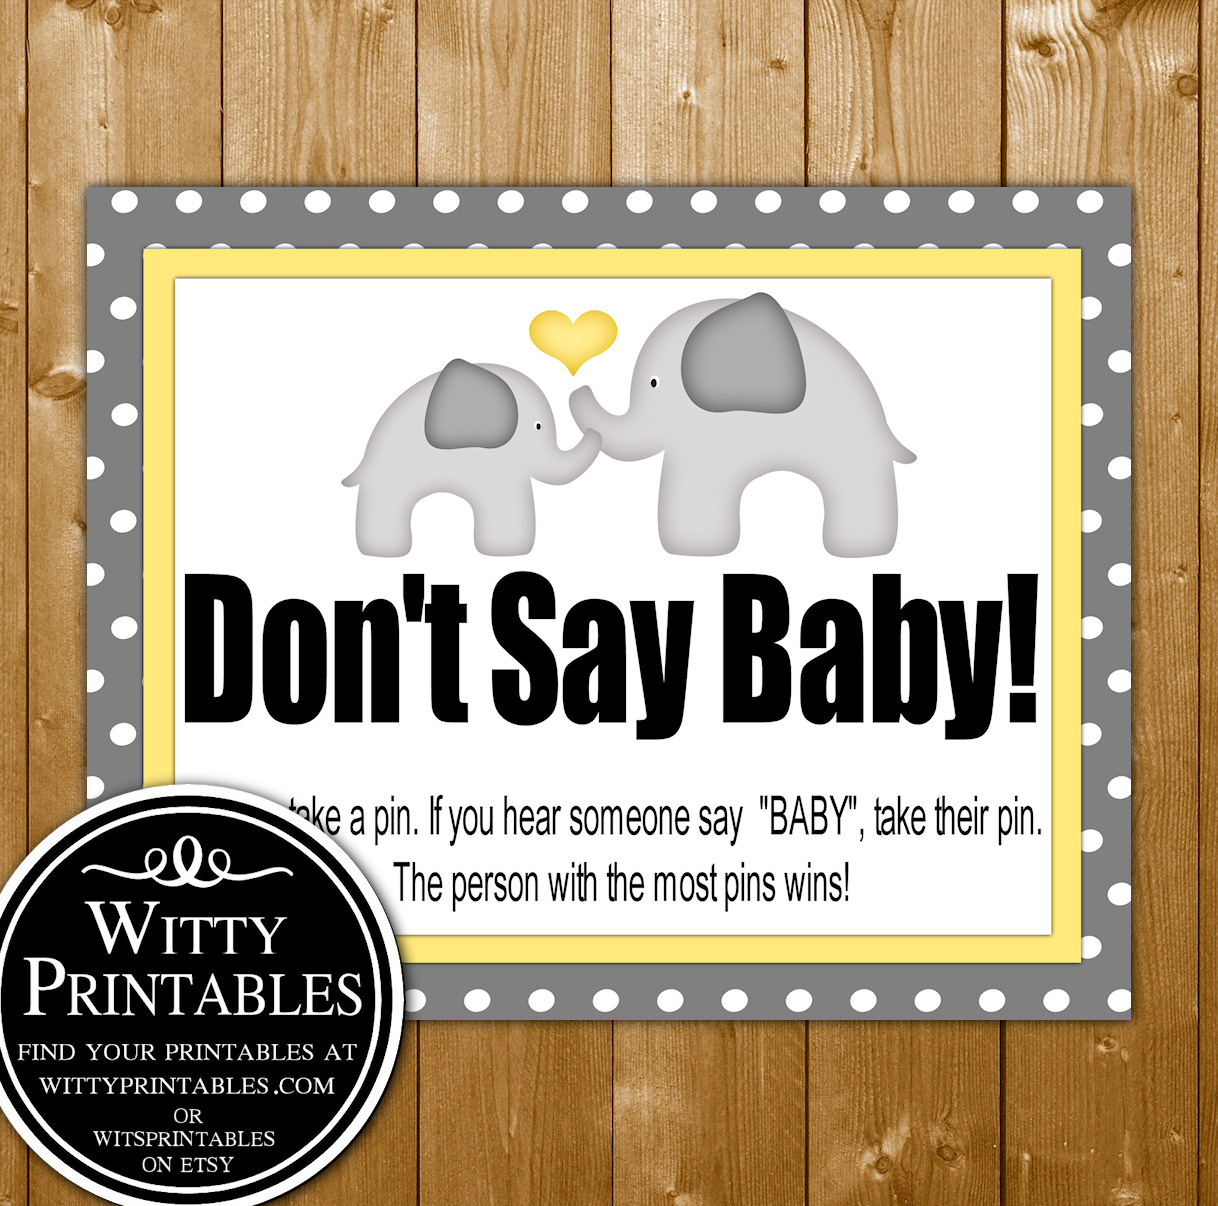 photo regarding Don T Say Baby Game Printable named Dont Say Boy or girl Boy or girl Shower Video game Printable Yellow Elephant Impartial Topic